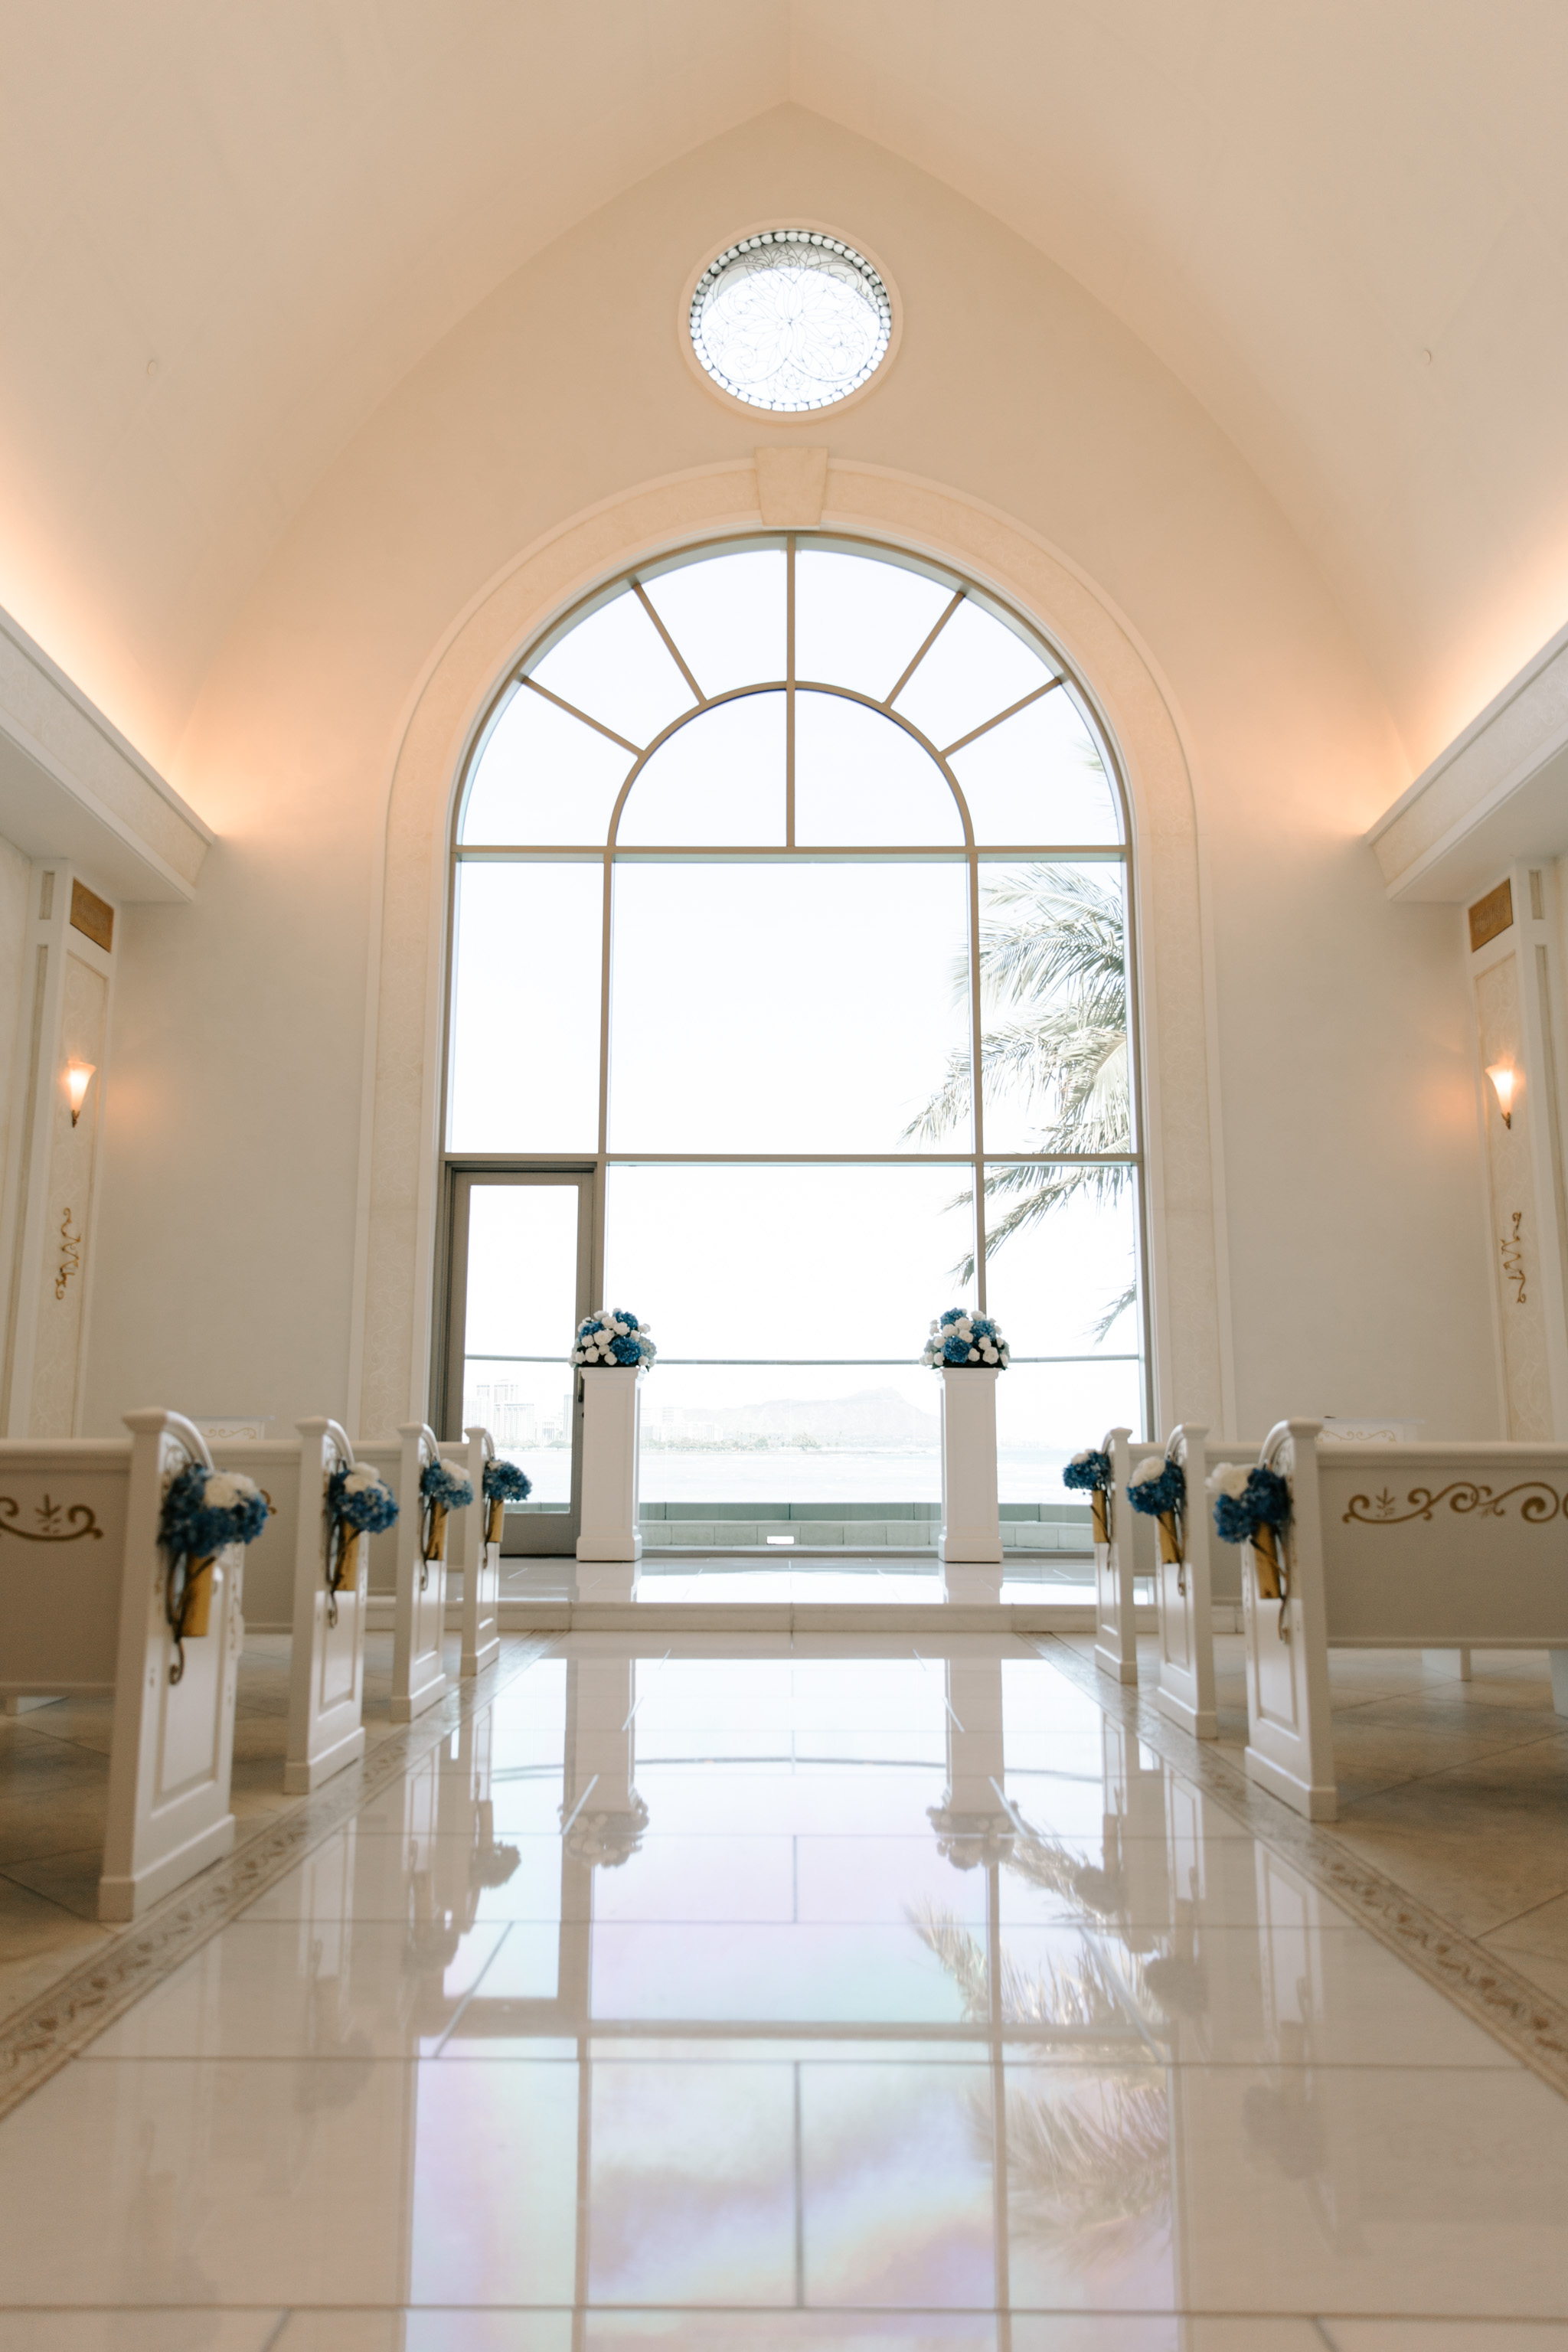 53 By The Sea Hawaii Wedding Naupaka Chapel By Oahu Wedding Photographer Desiree Leilani